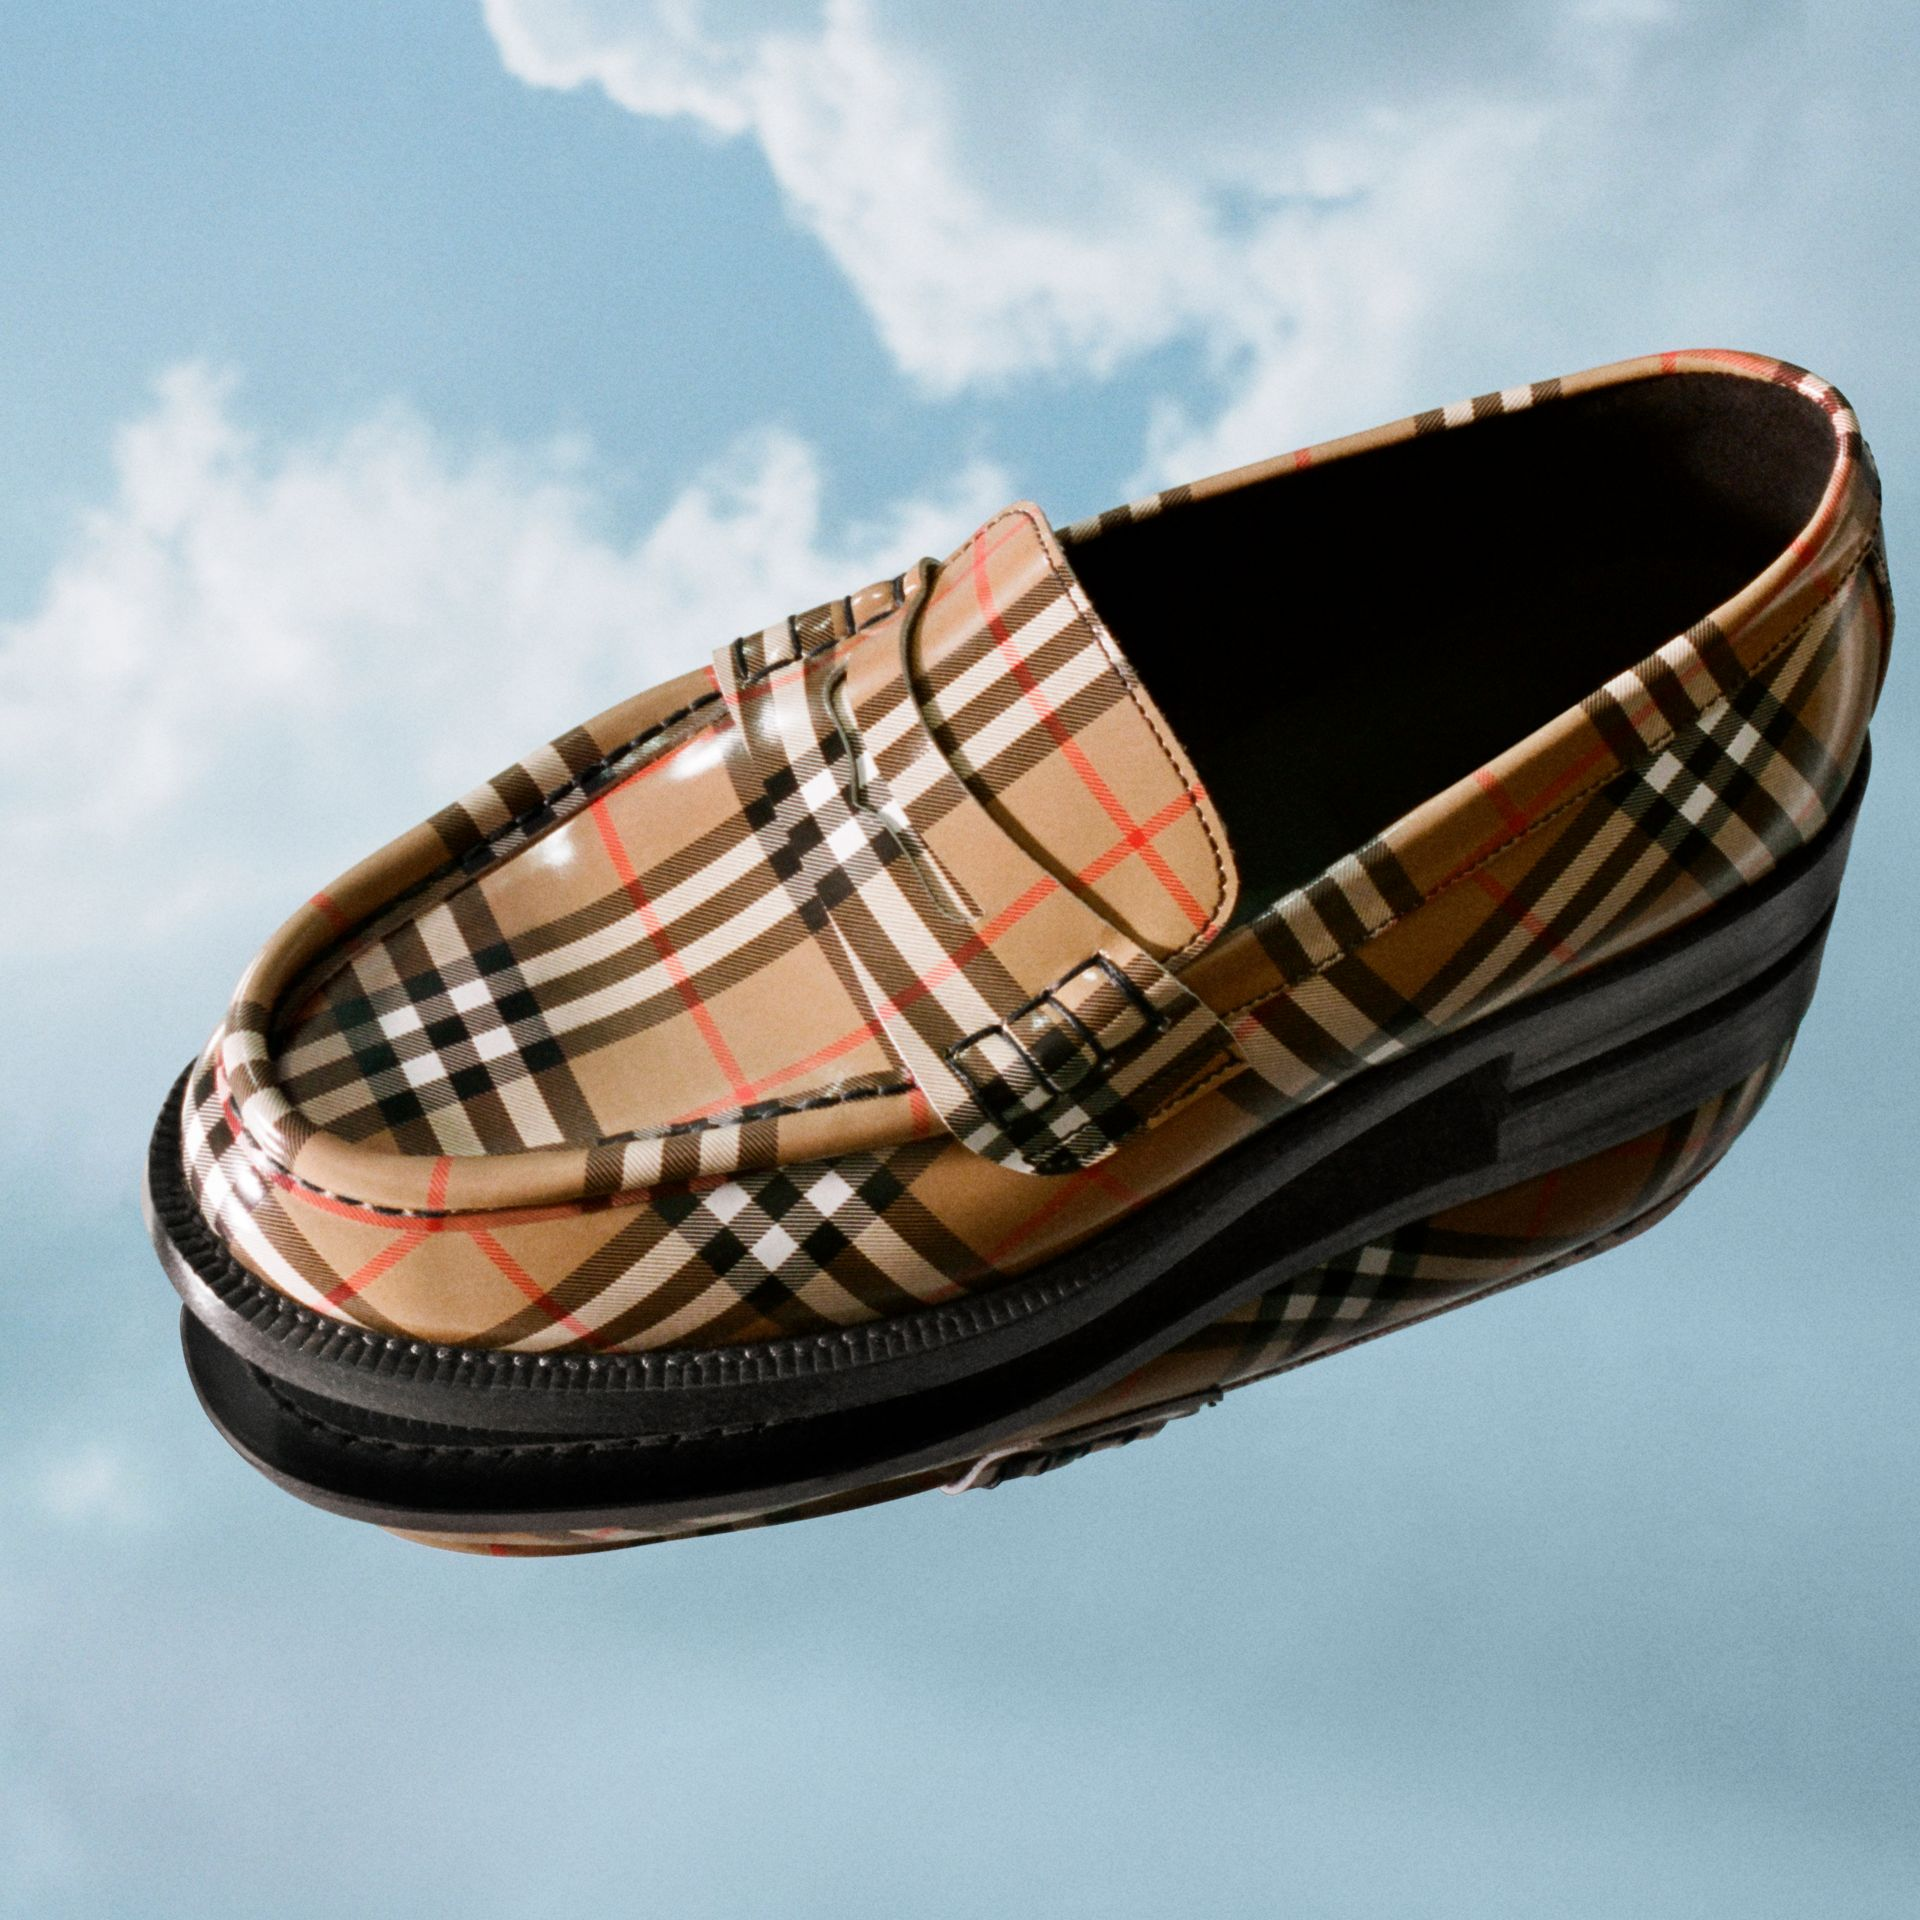 Gosha x Burberry Check Leather Loafers in Antique Yellow - Men | Burberry Australia - gallery image 1